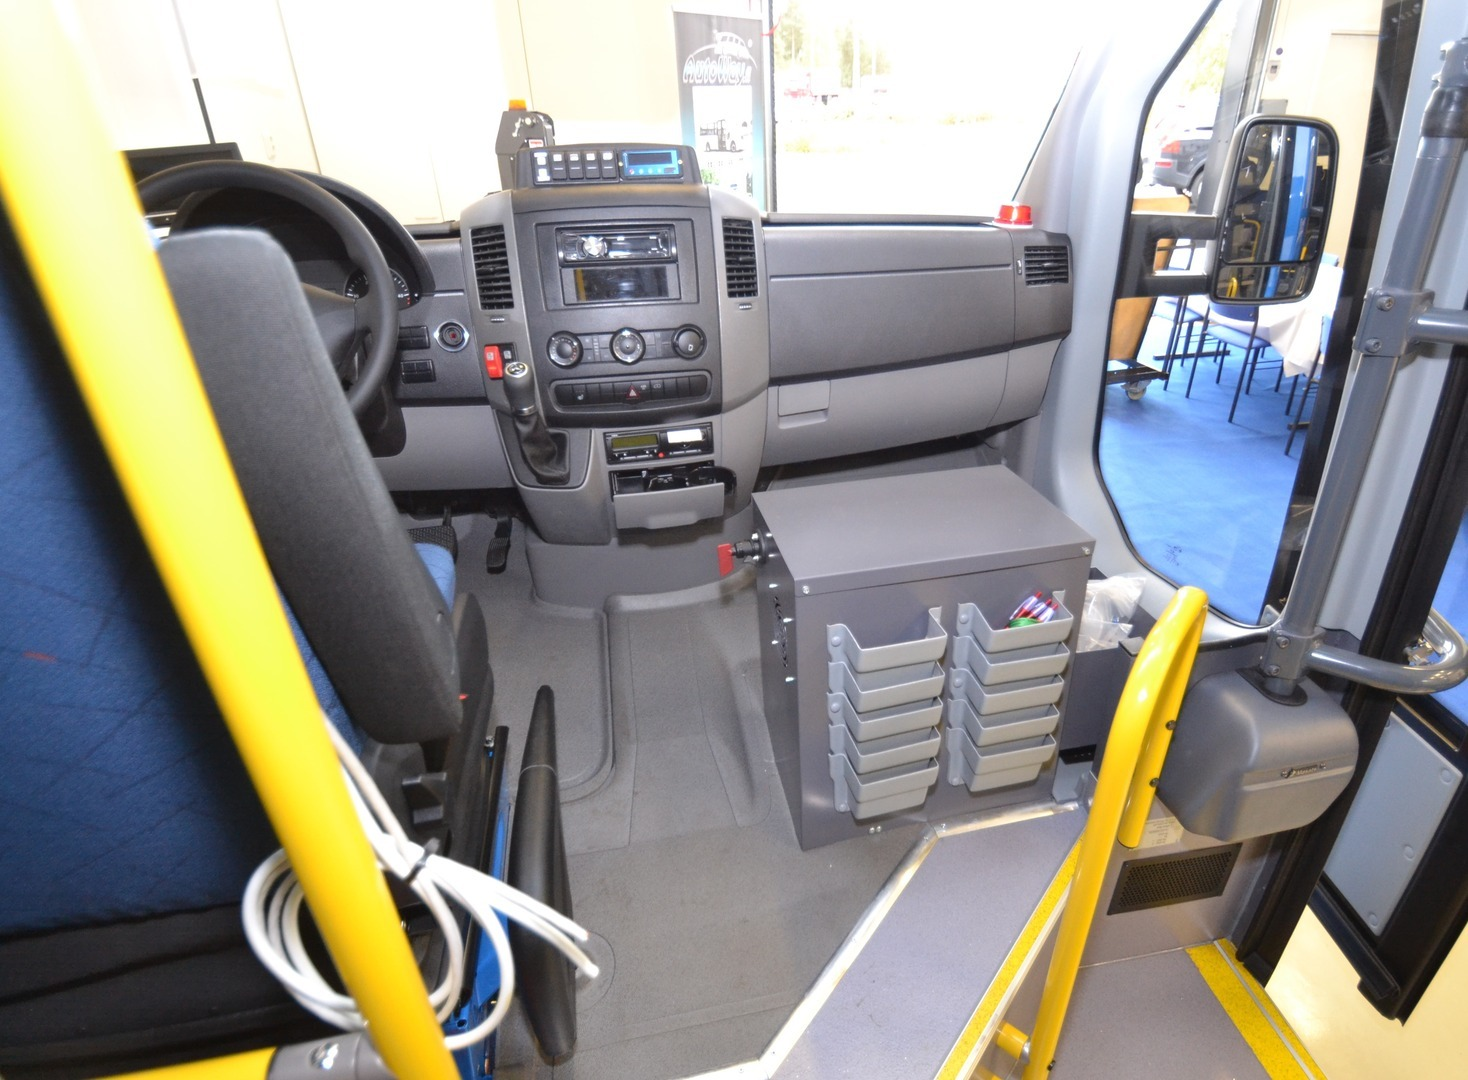 Mercedes-Benz Sprinter, 516 CDI Automet Cityliner Smile